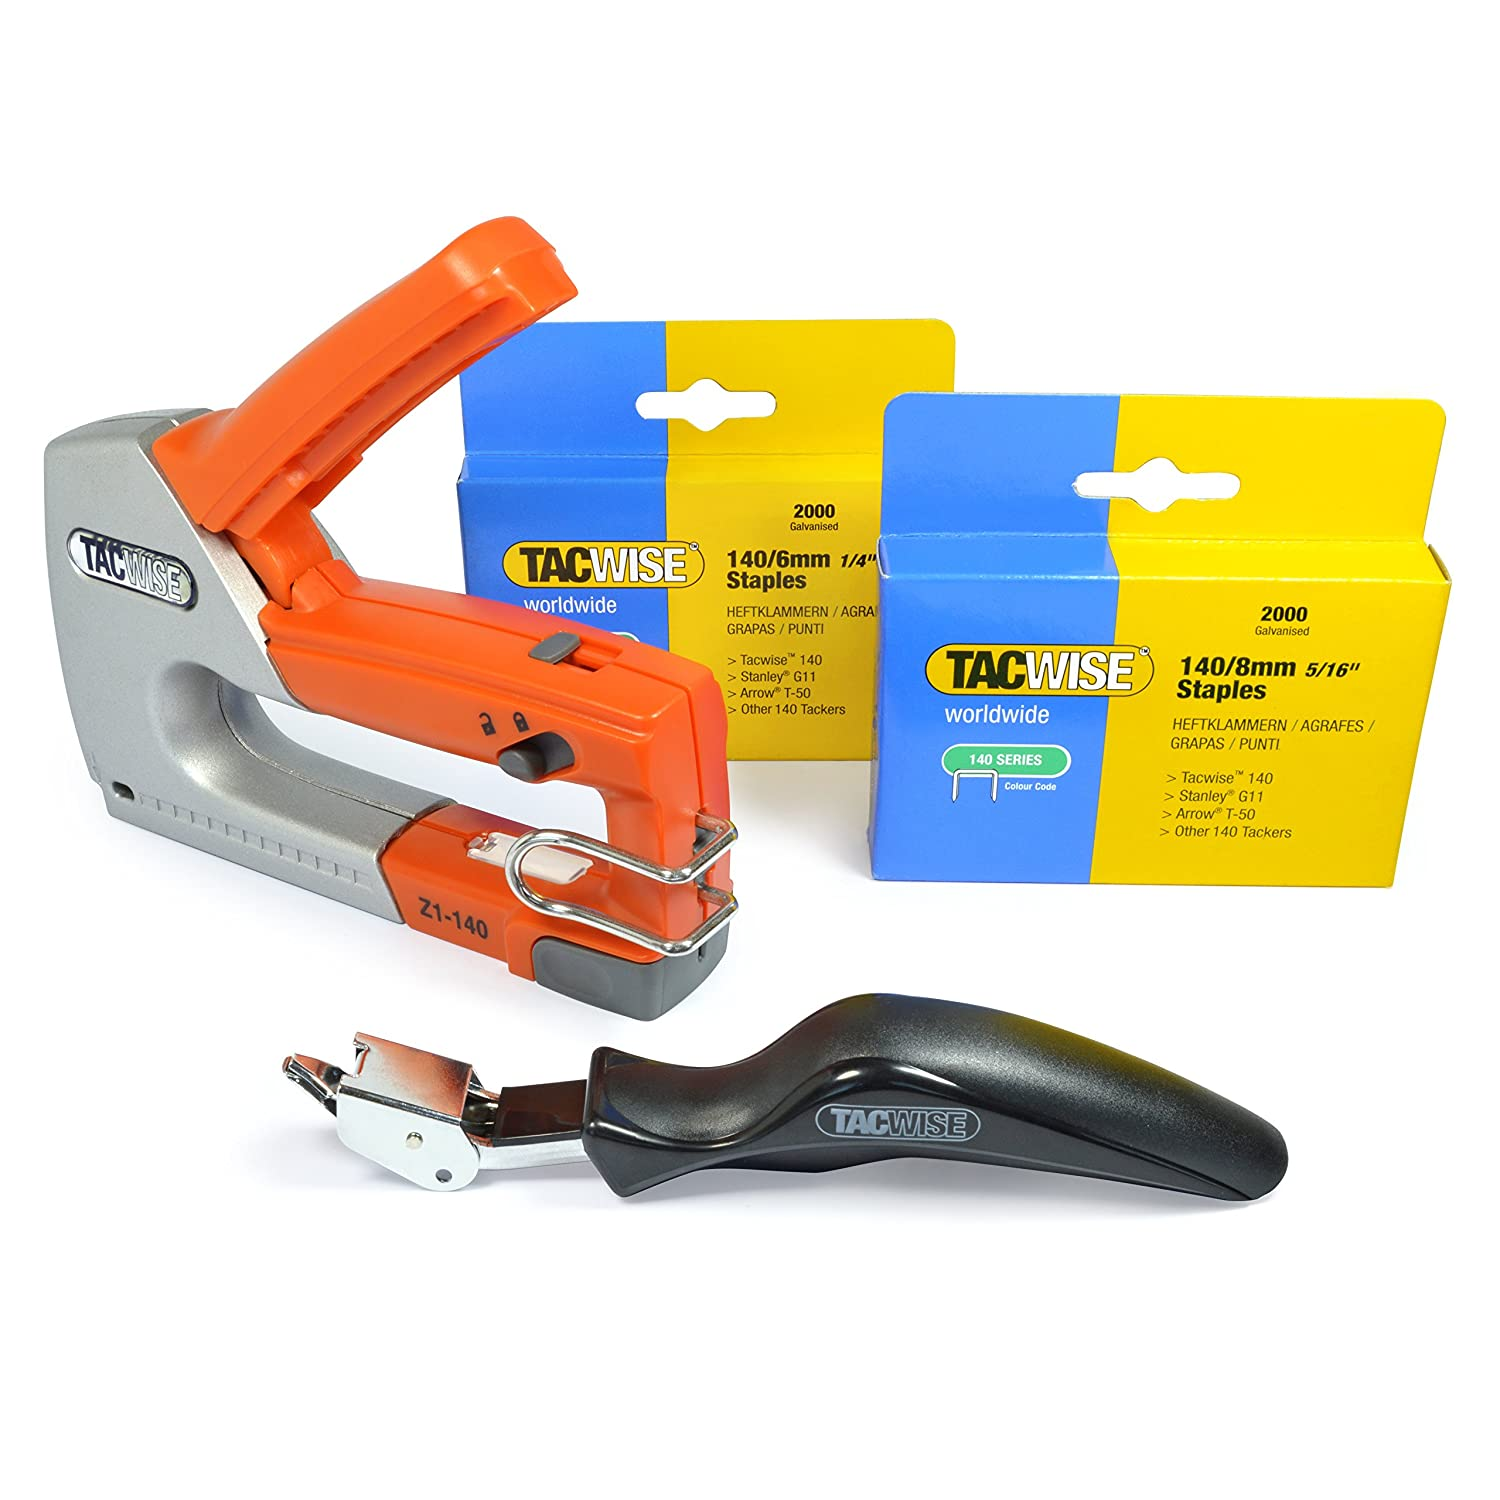 Tacwise Z1-140 Heavy Duty Hand Tacker/Staple Gun for 5/32, 3/16, 1/4 and 5/16 Inches Long Staples, Silver/Orange (0854)